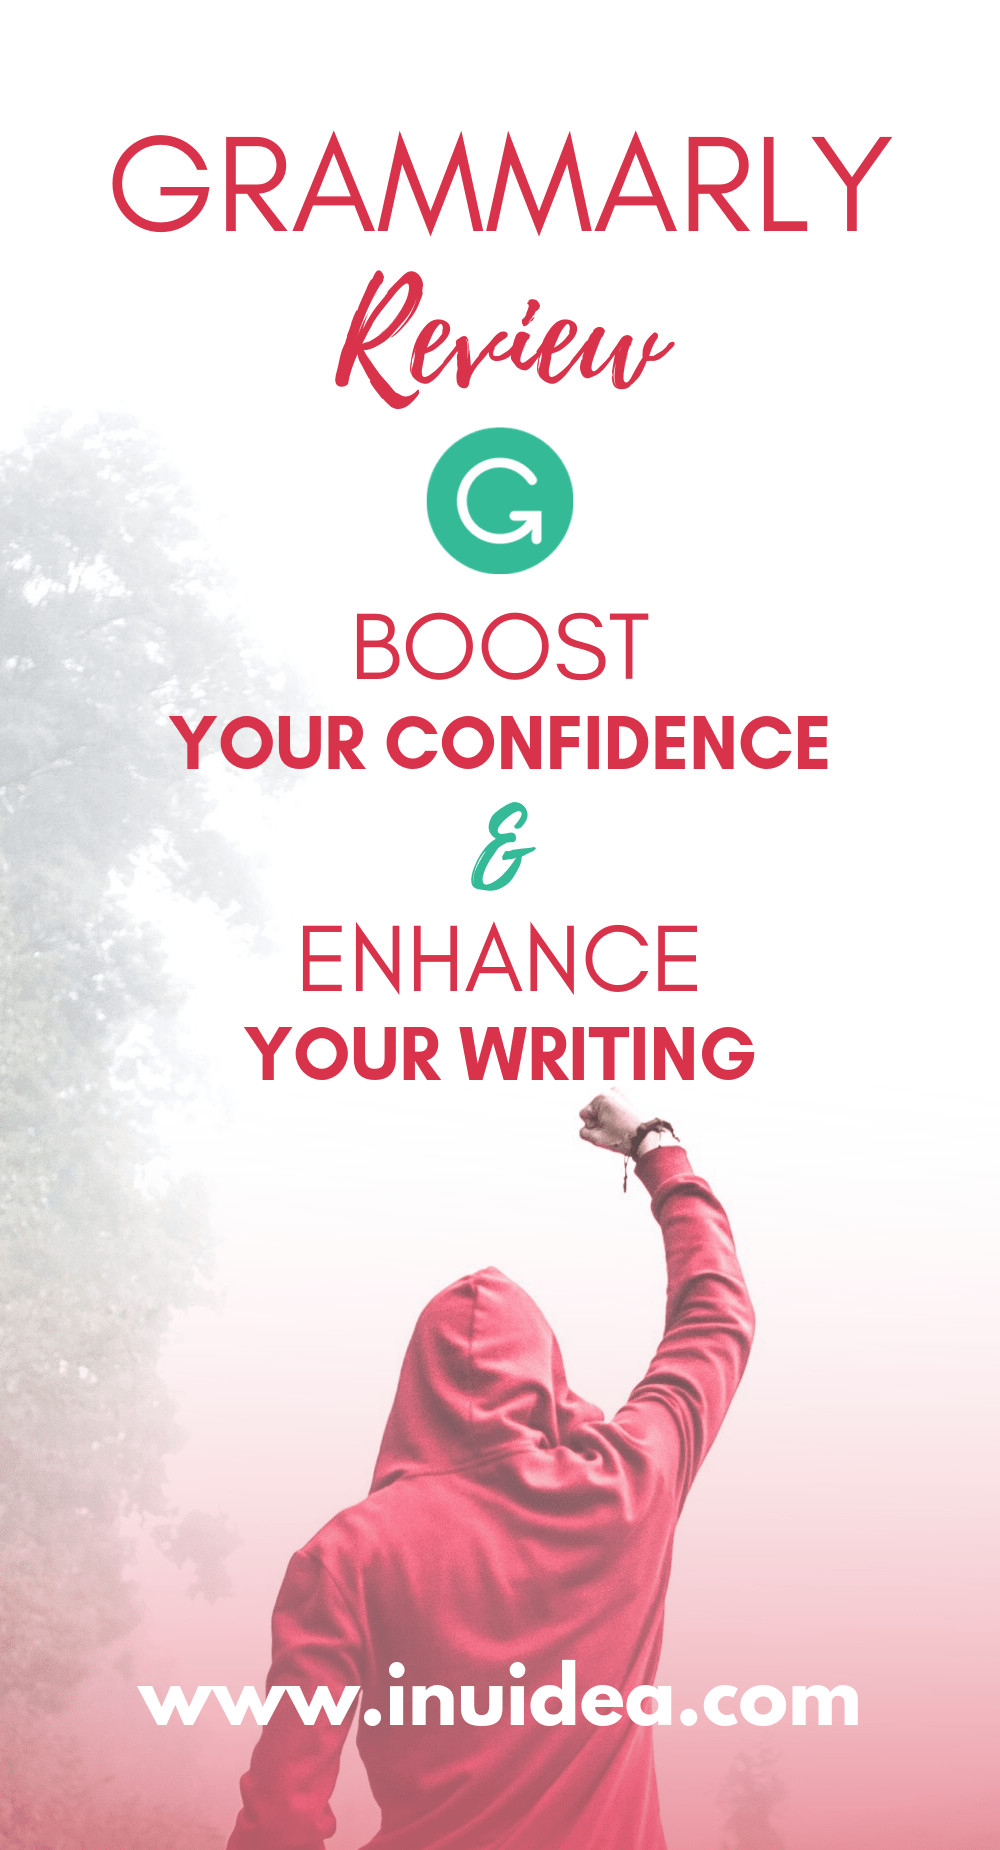 Grammarly Proofreading Software Deals Today Stores 2020